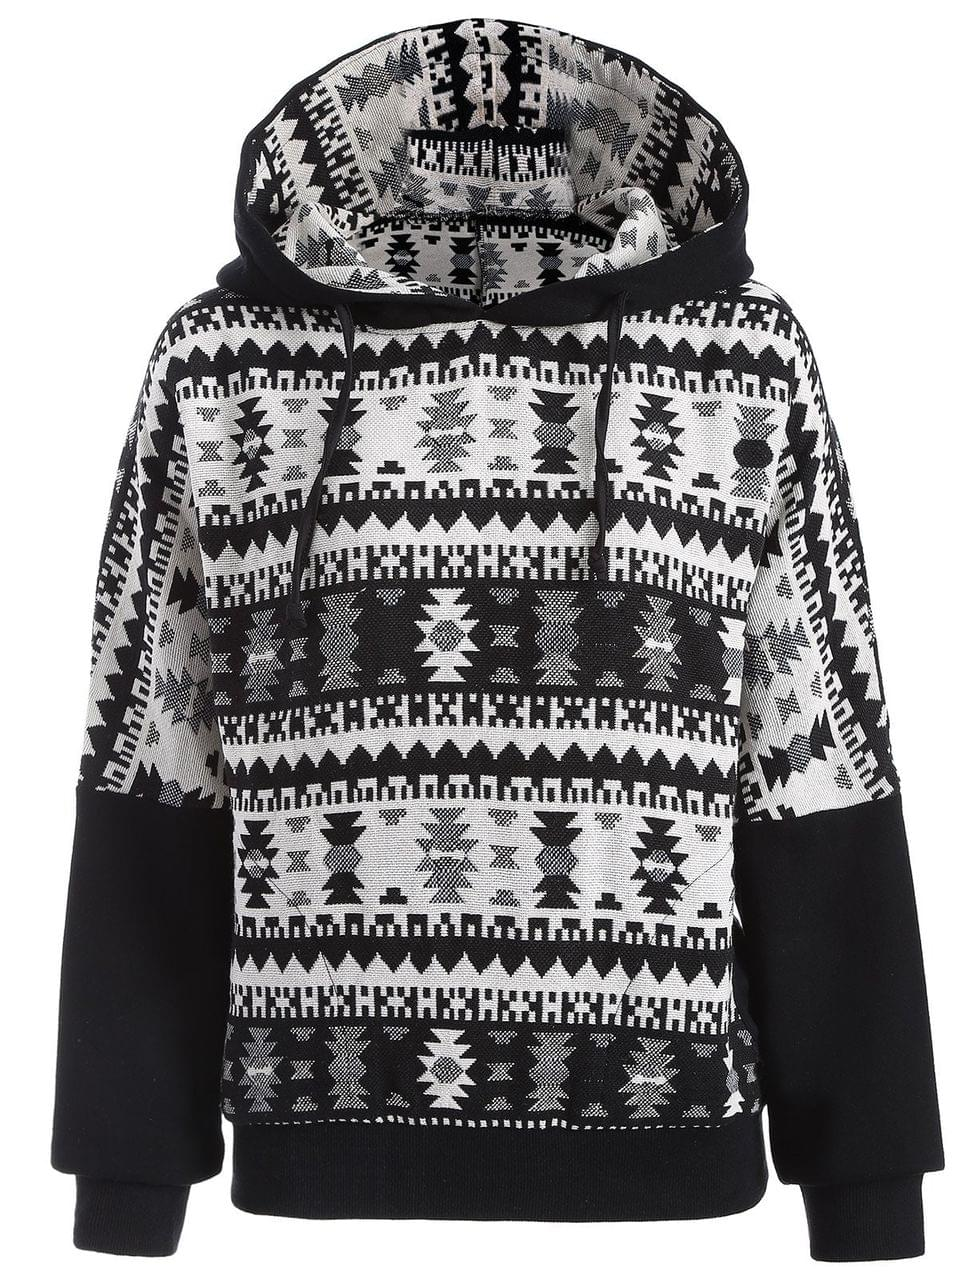 Women's Tribal Jacquard Pullover Batwing Hoodie - White And Black M